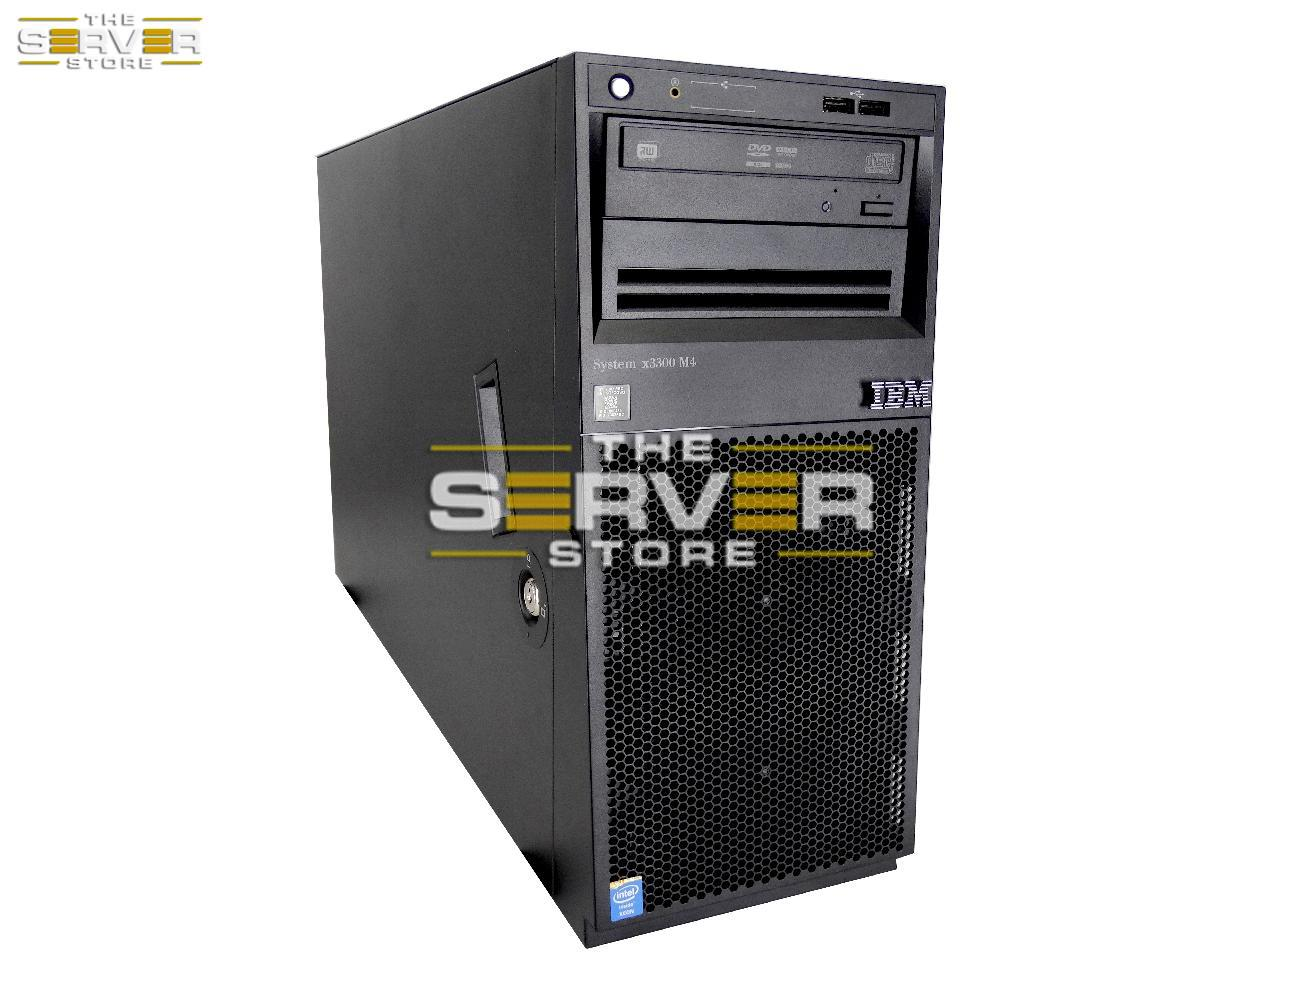 IBM X3300 M4 Tower Server